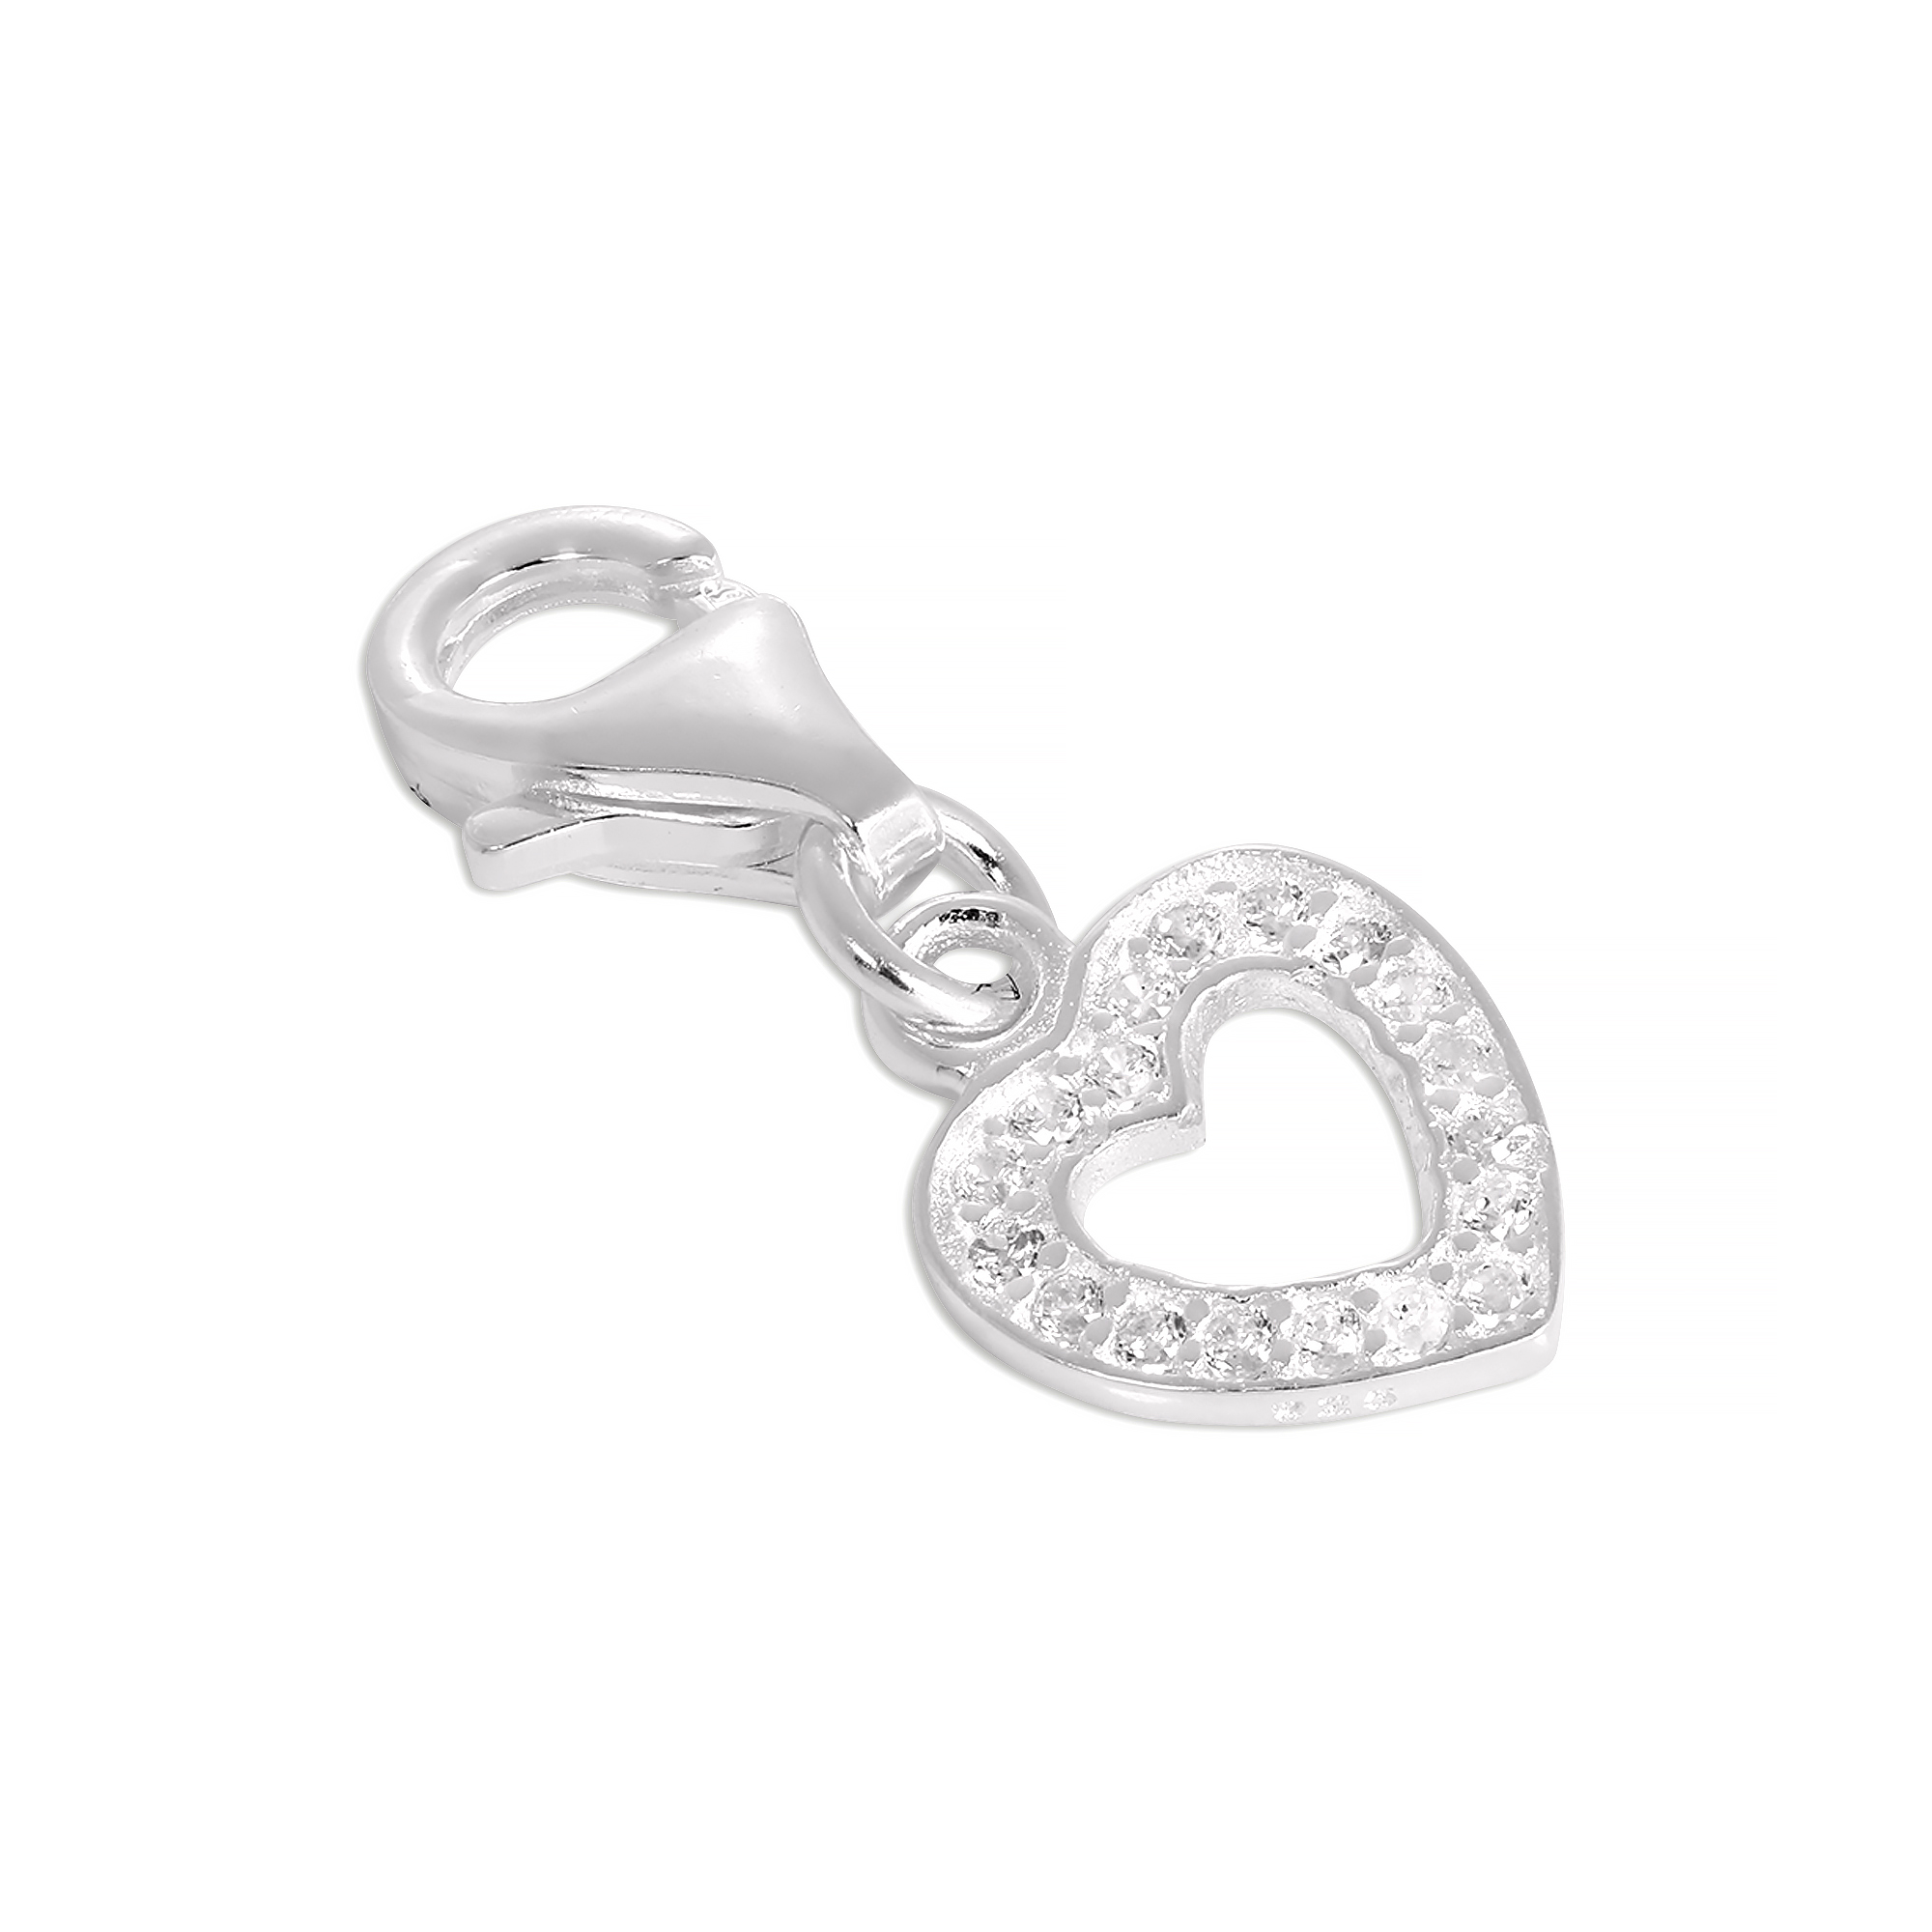 An image of Sterling Silver CZ Crystal Encrusted Open Heart Clip on Charm